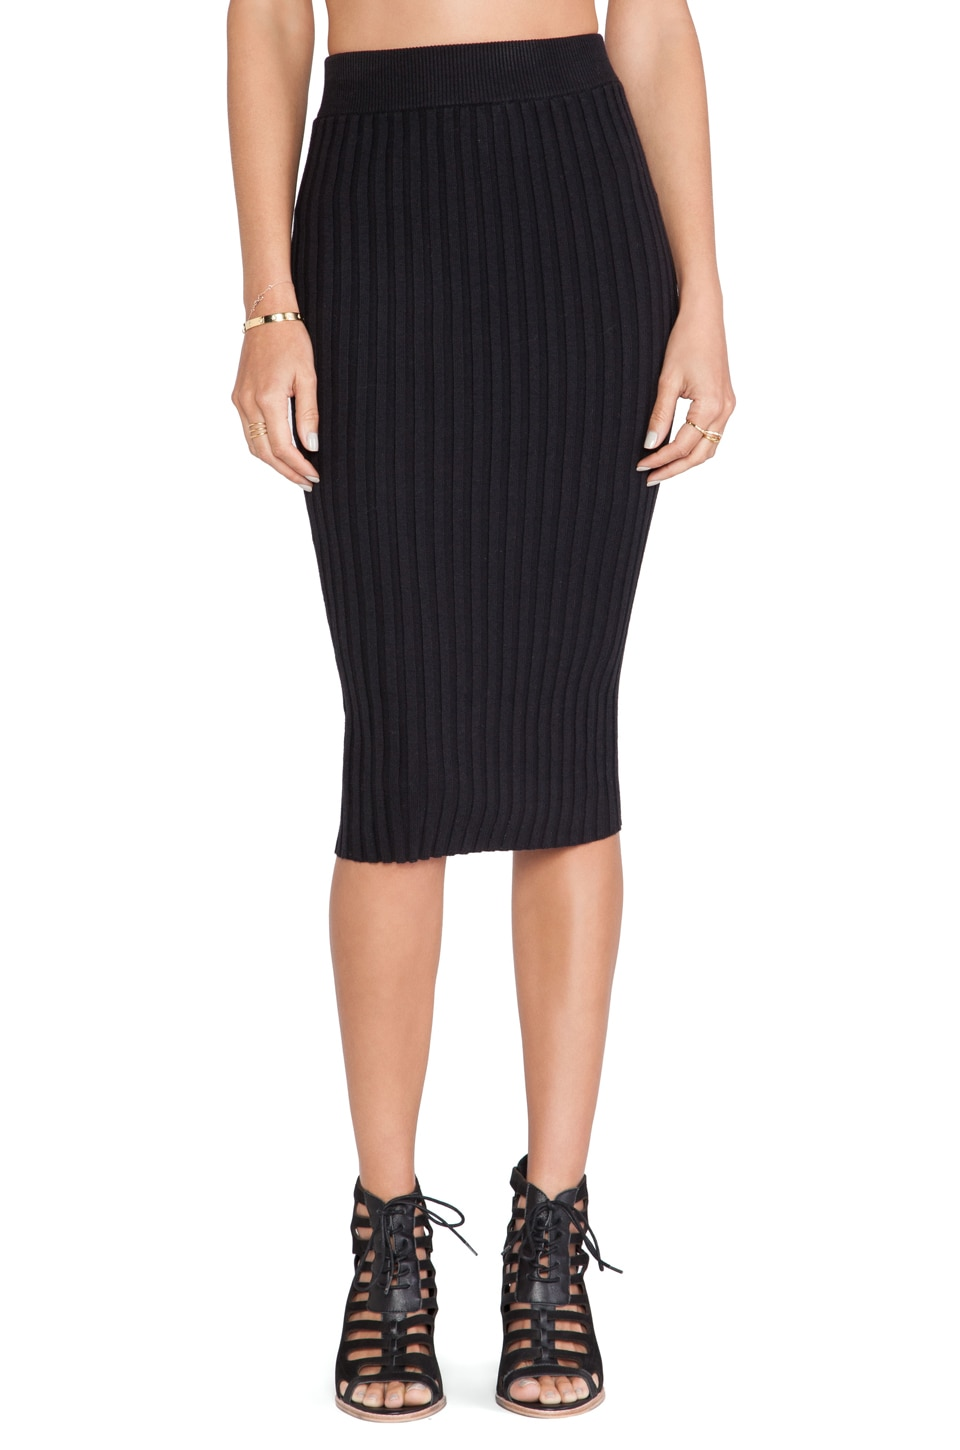 For Love & Lemons Back to Basics Pencil Skirt in Black